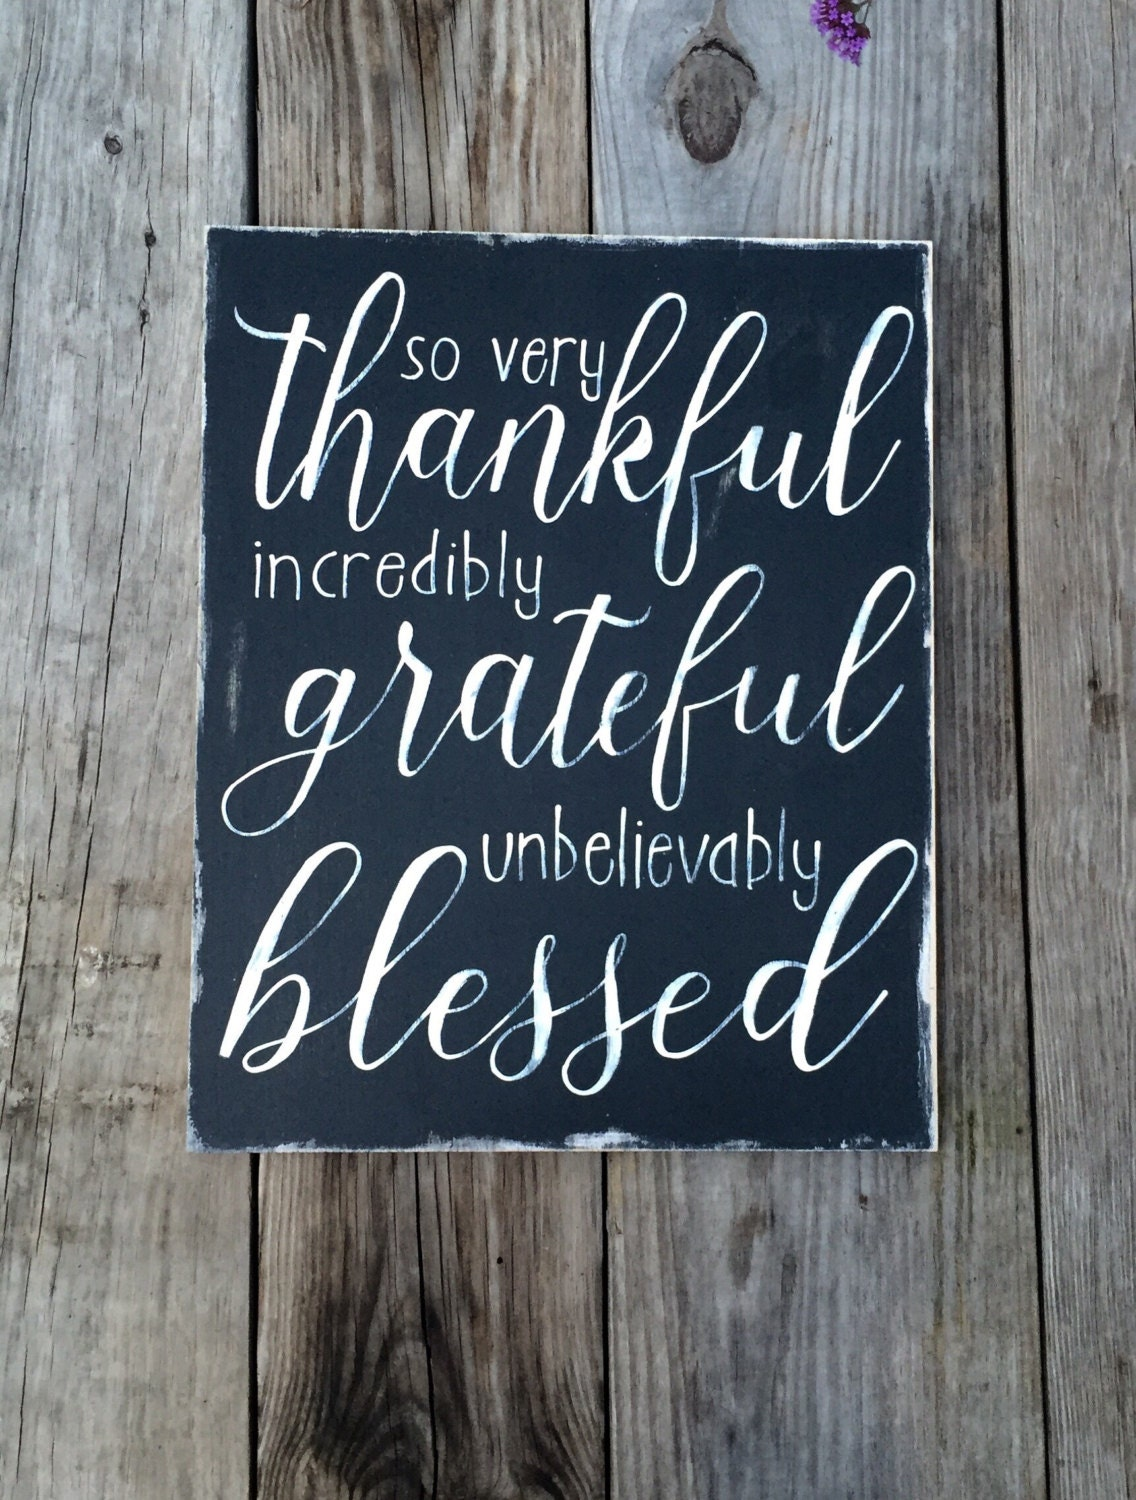 Thankful Grateful Blessed Wooden Sign So Very Incredibly